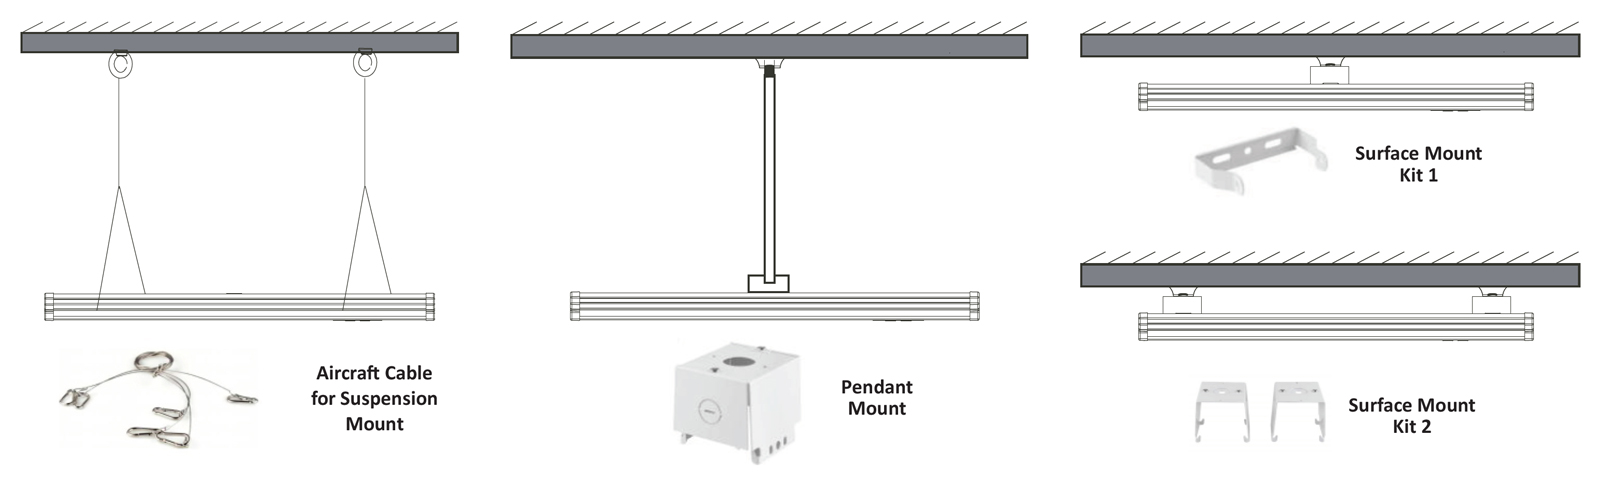 JLHB-CPS & PS CCT & Power Selectable Linear High Bay Series